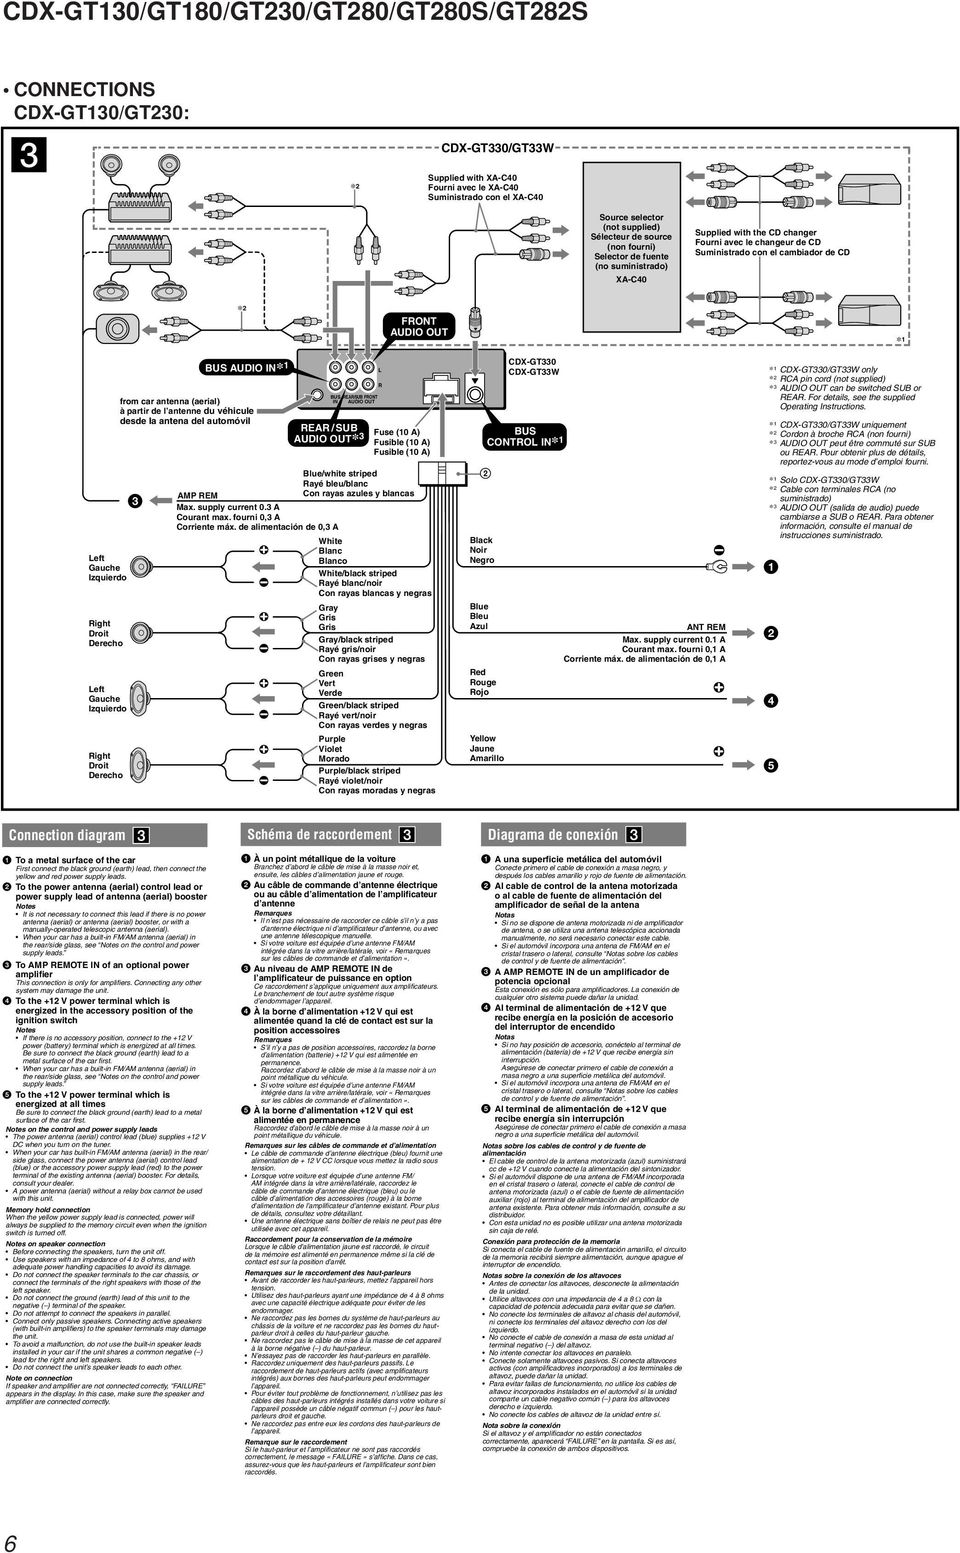 photo: cdx-gt130) specifications - pdf free download  docplayer.net